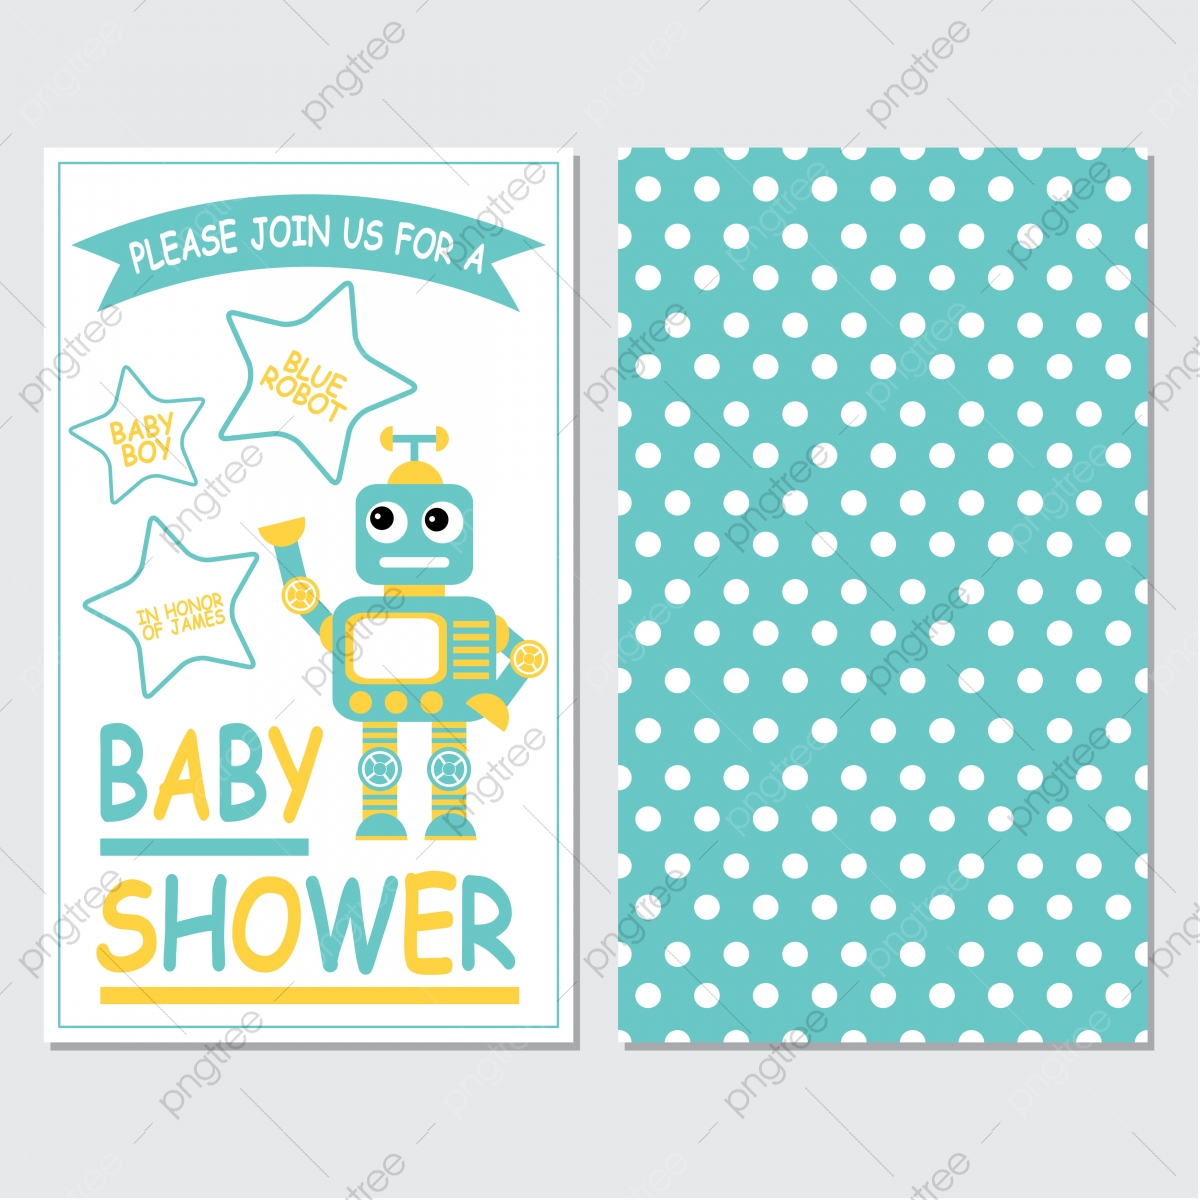 Cute Robot Boy On Blue Color Background Cartoon Illustration